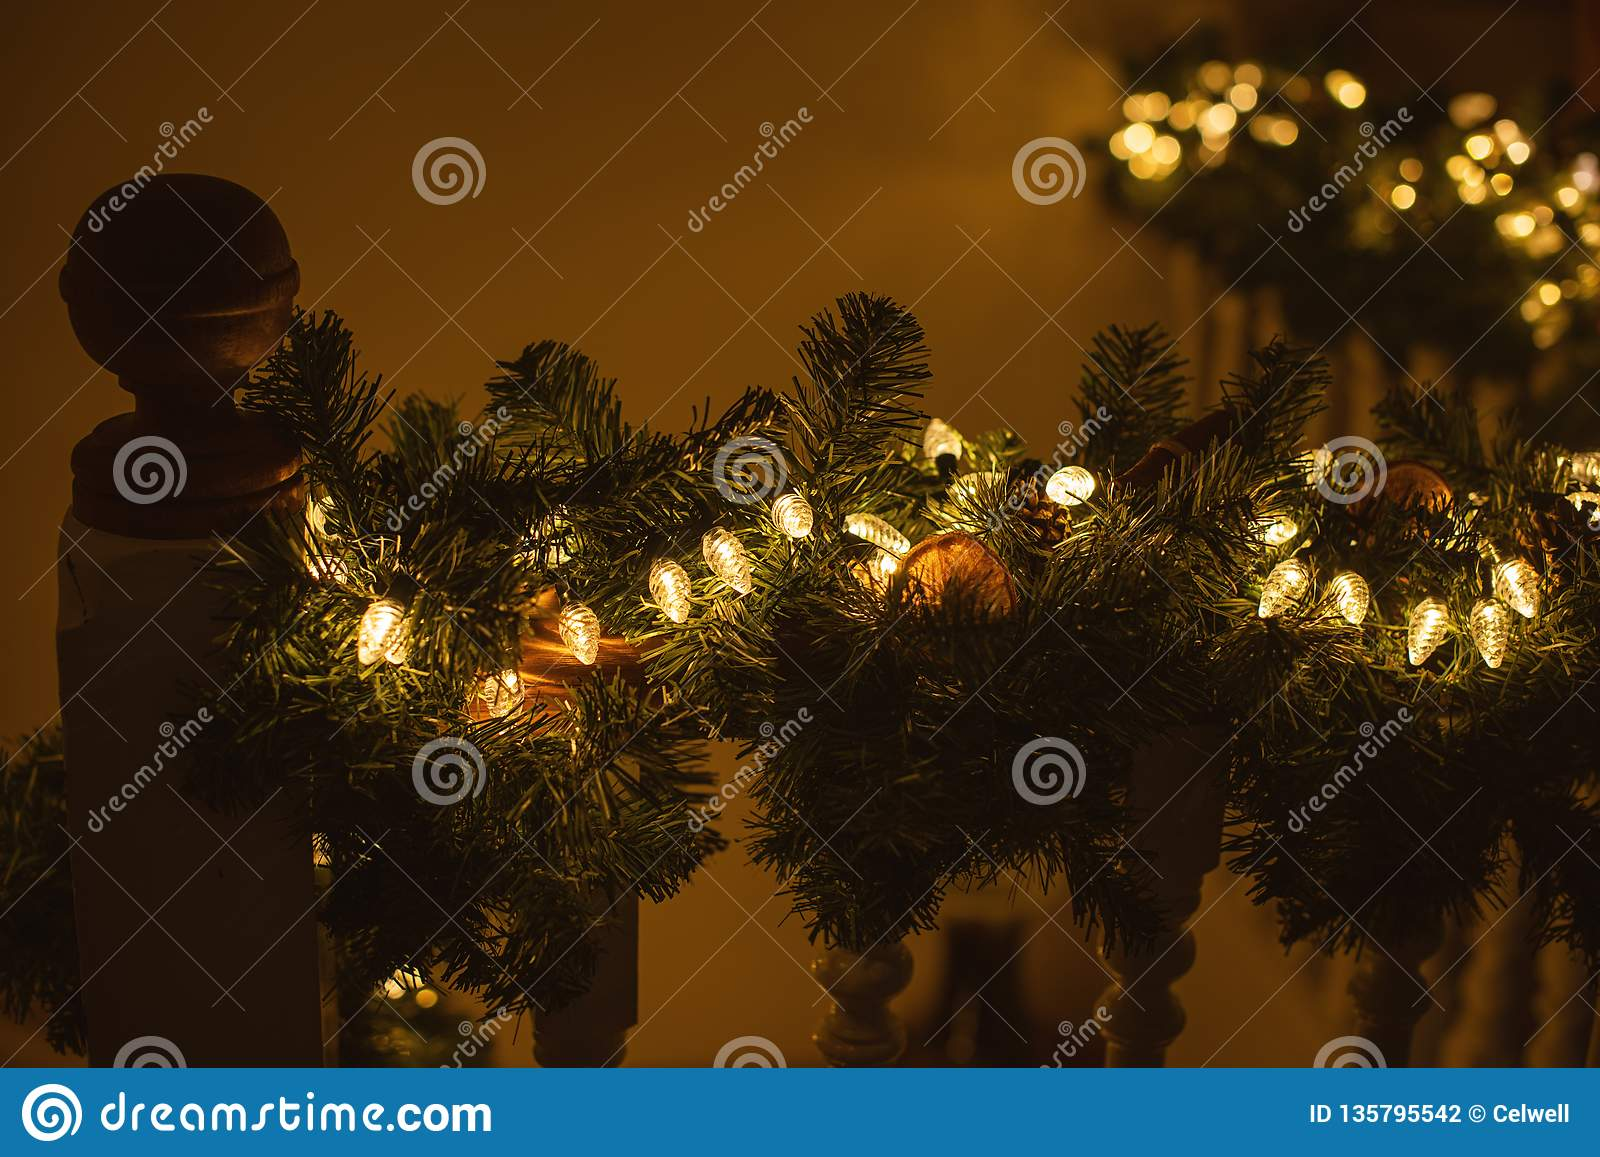 Picture of: Staircase Decorated For Christmas Warm Tone Stock Photo Image Of Home Decorated 135795542